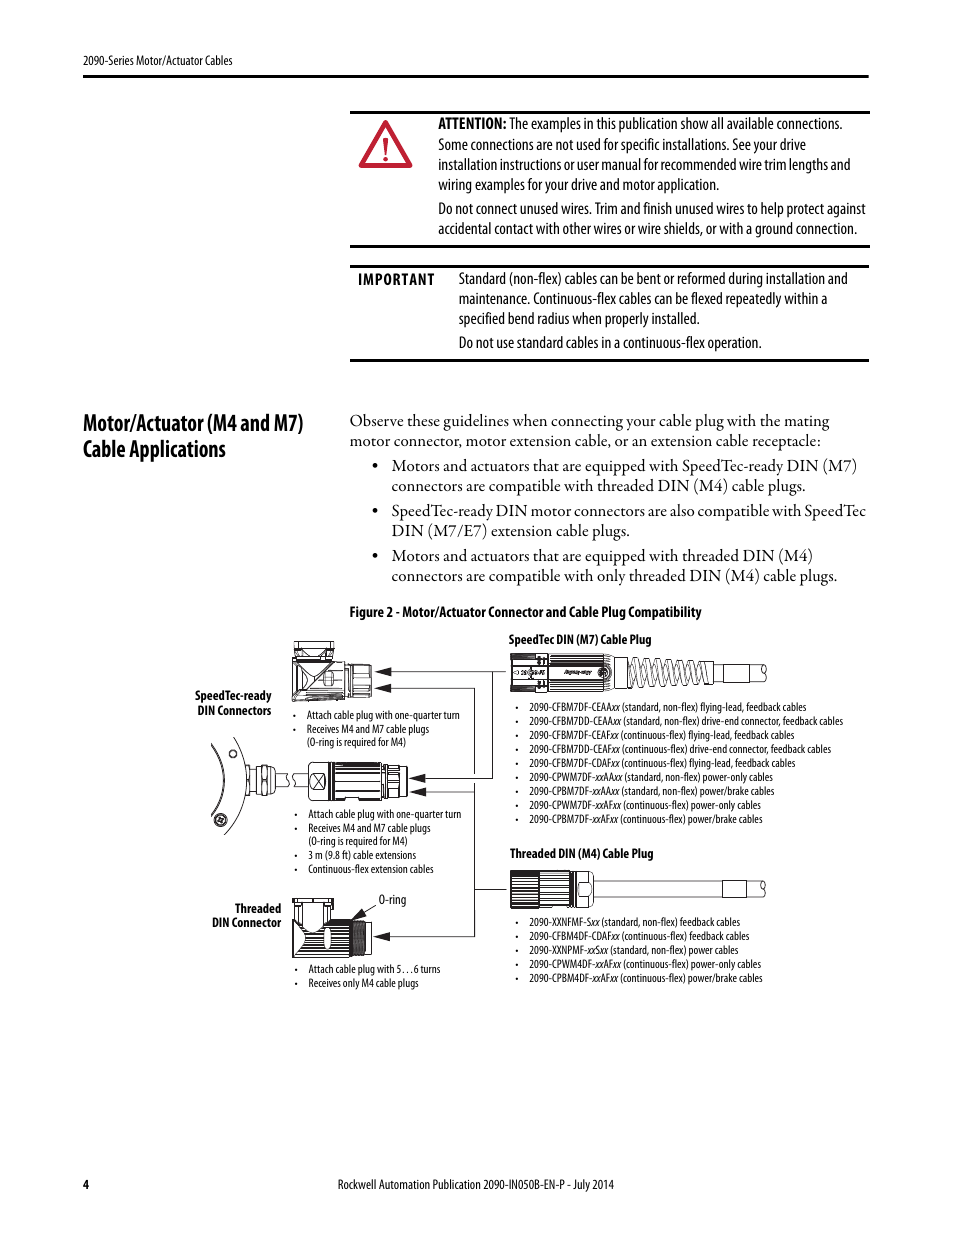 Motor/actuator (m4 and m7) cable applications | Rockwell Automation ...